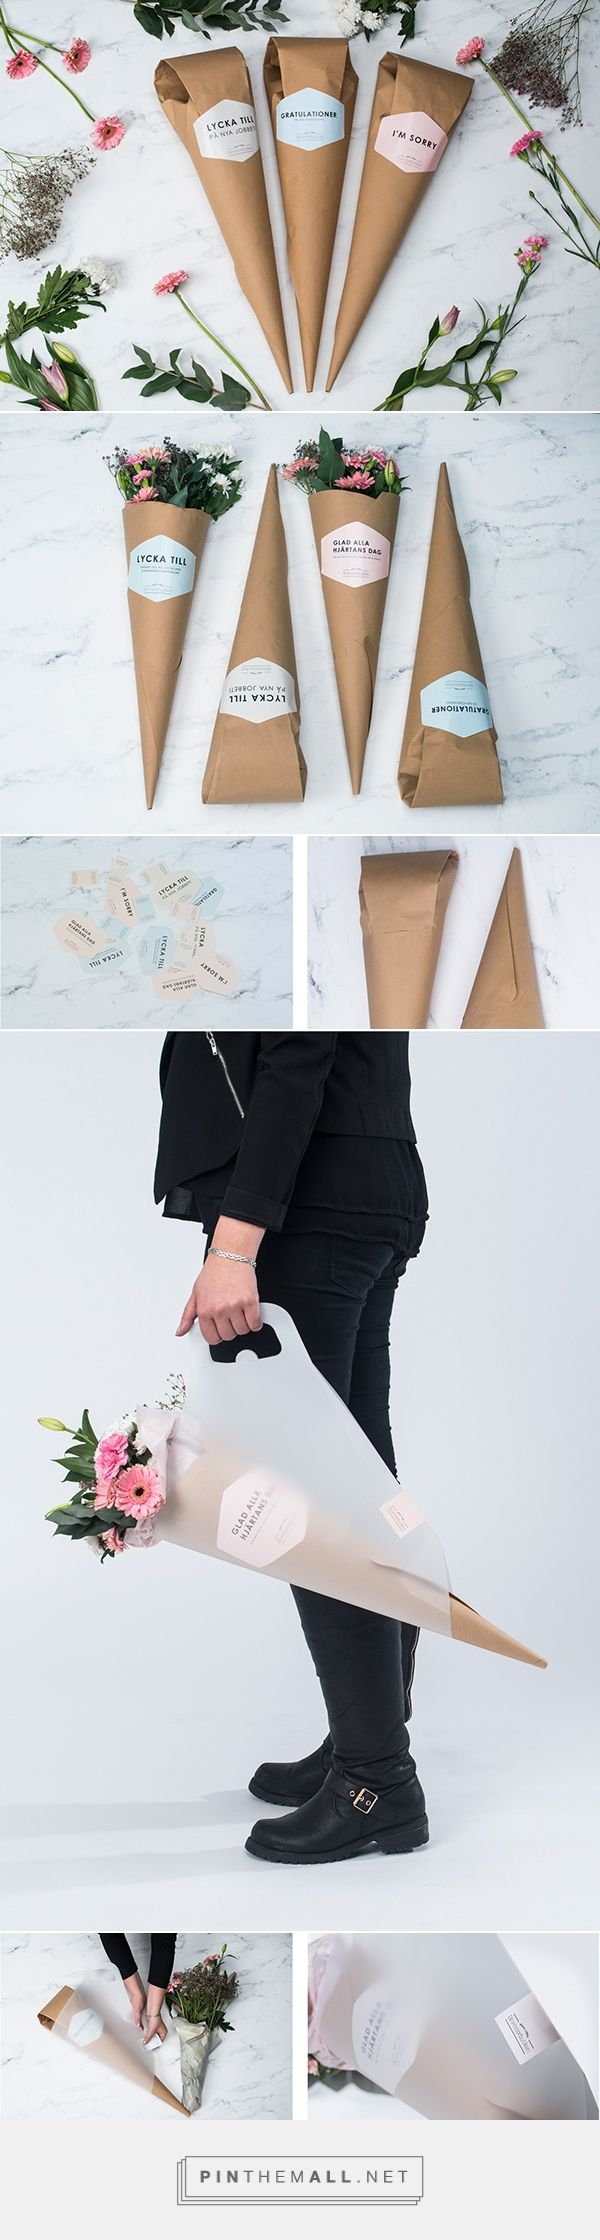 Flower packaging on Packaging Design Served - created via https://pinthemall.net